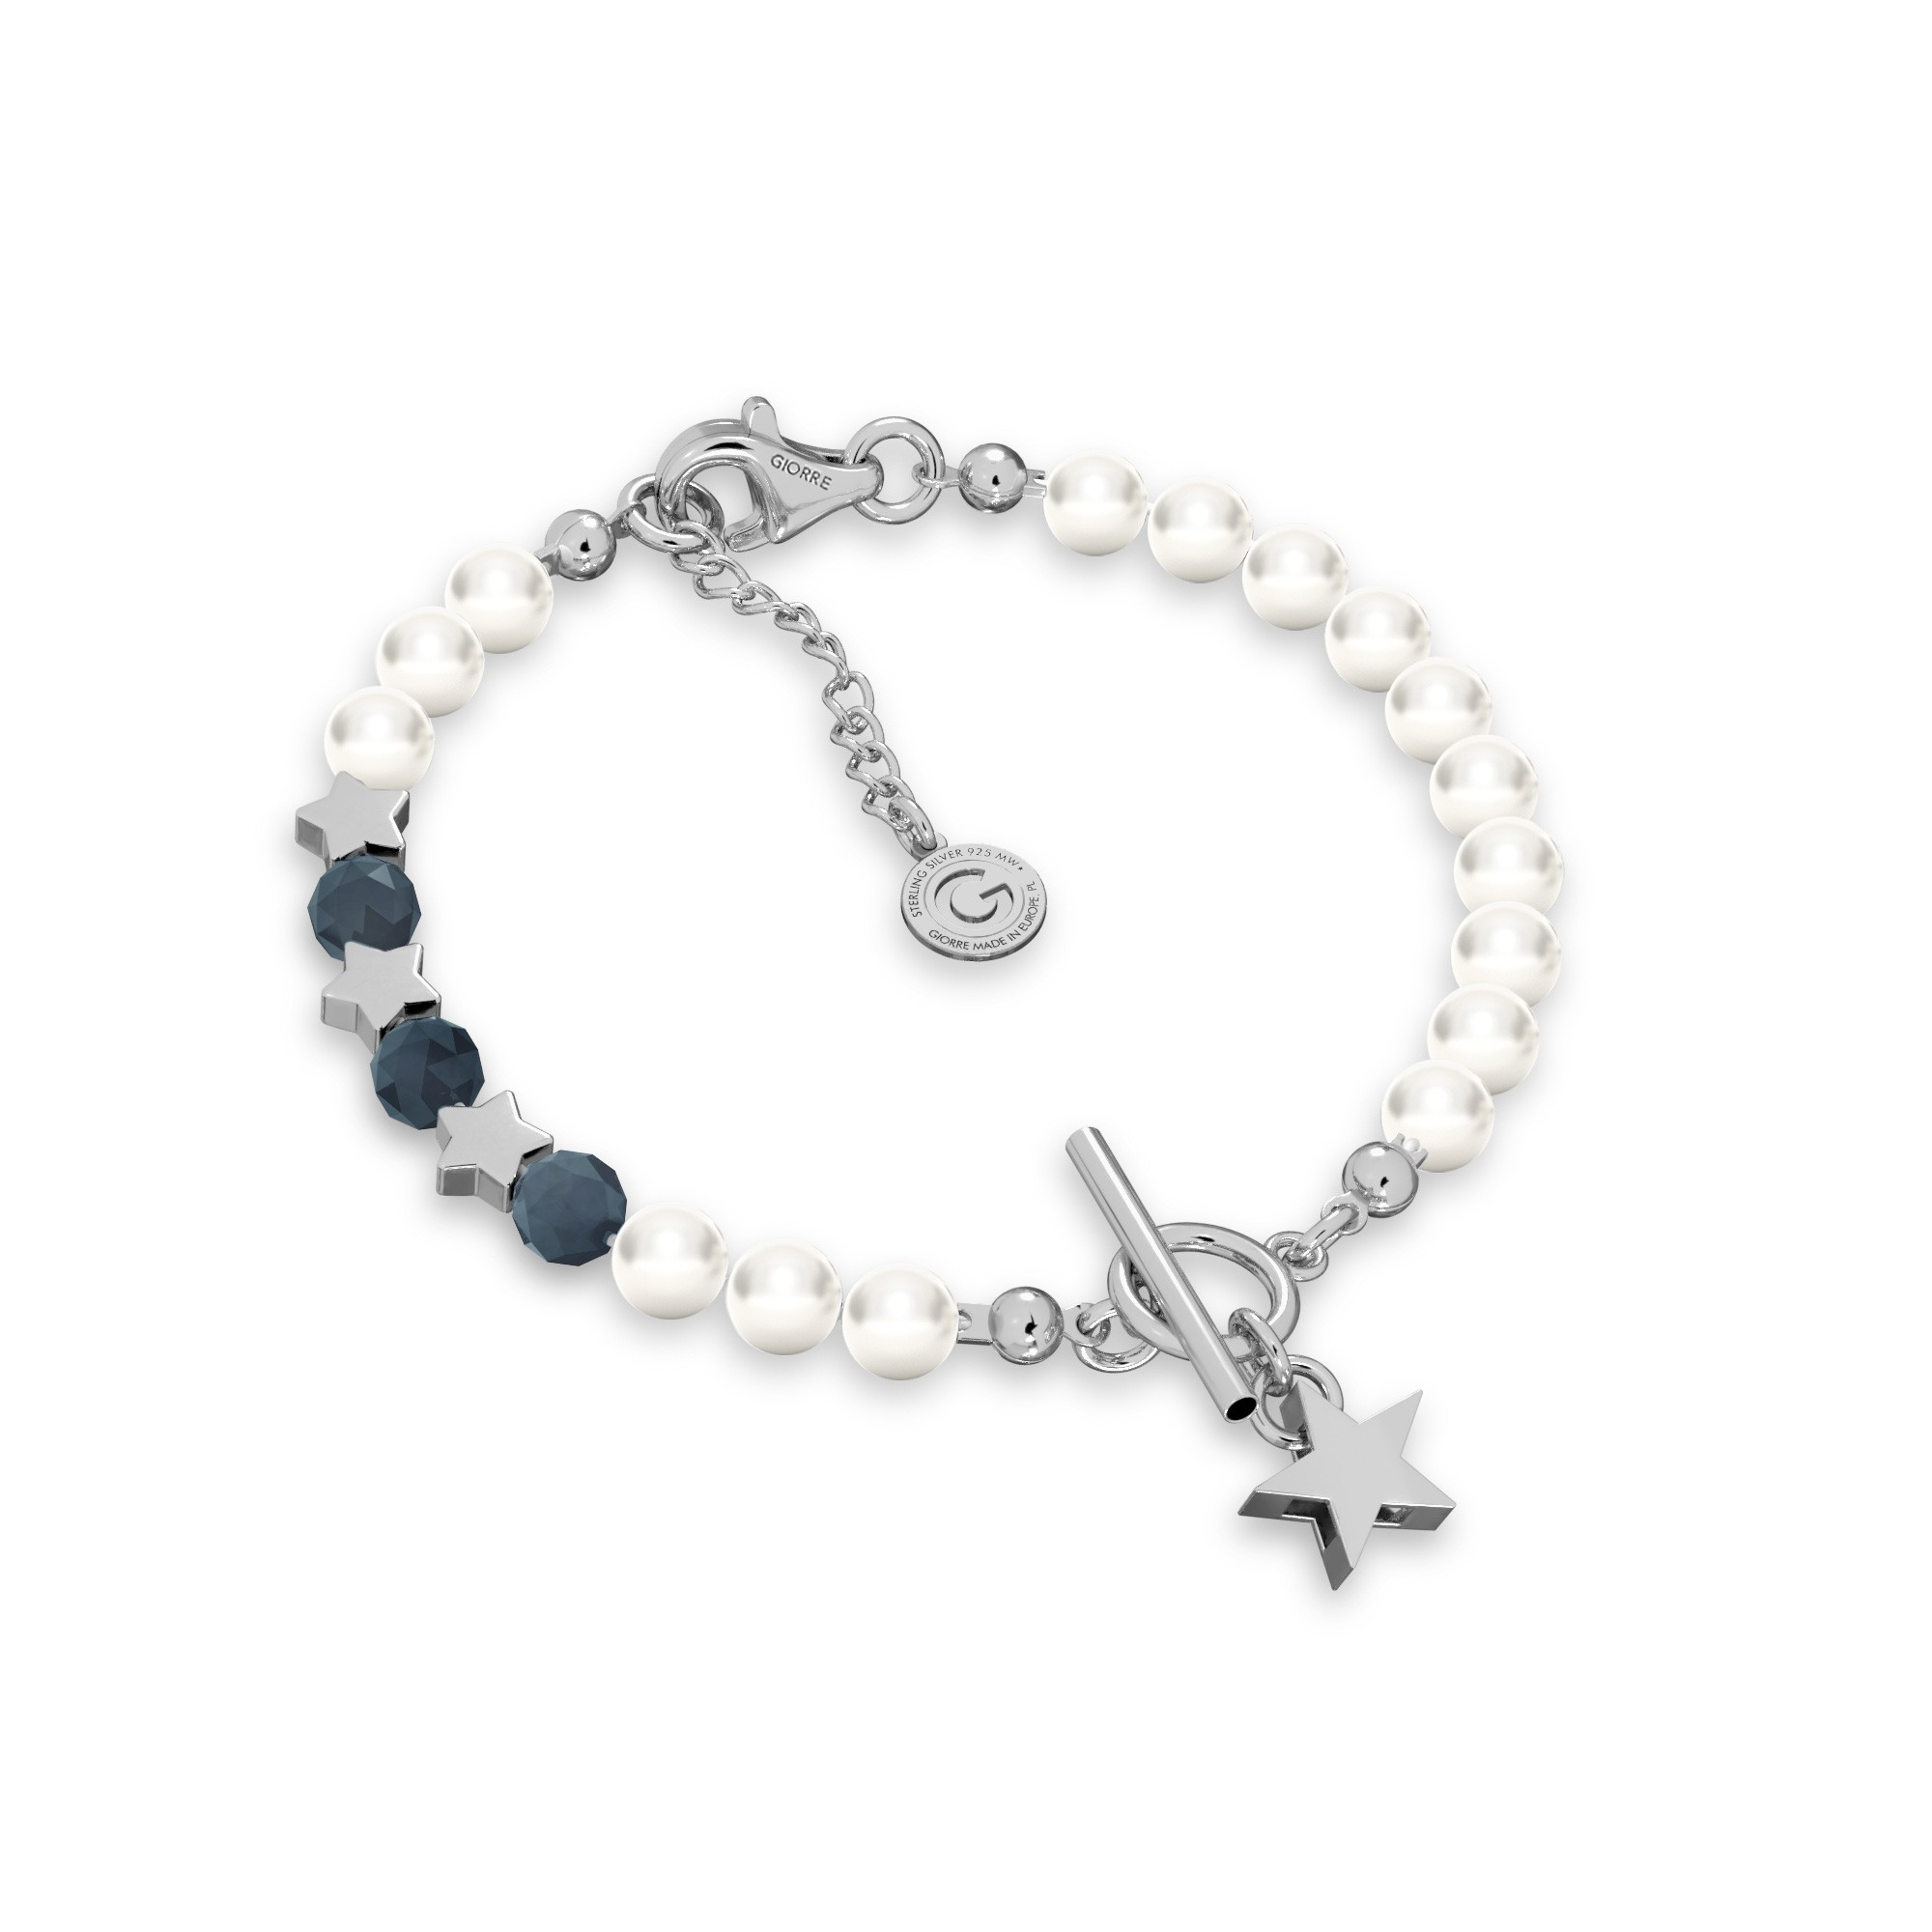 Sapphire pearl bracelet with stars, sterling silver 925